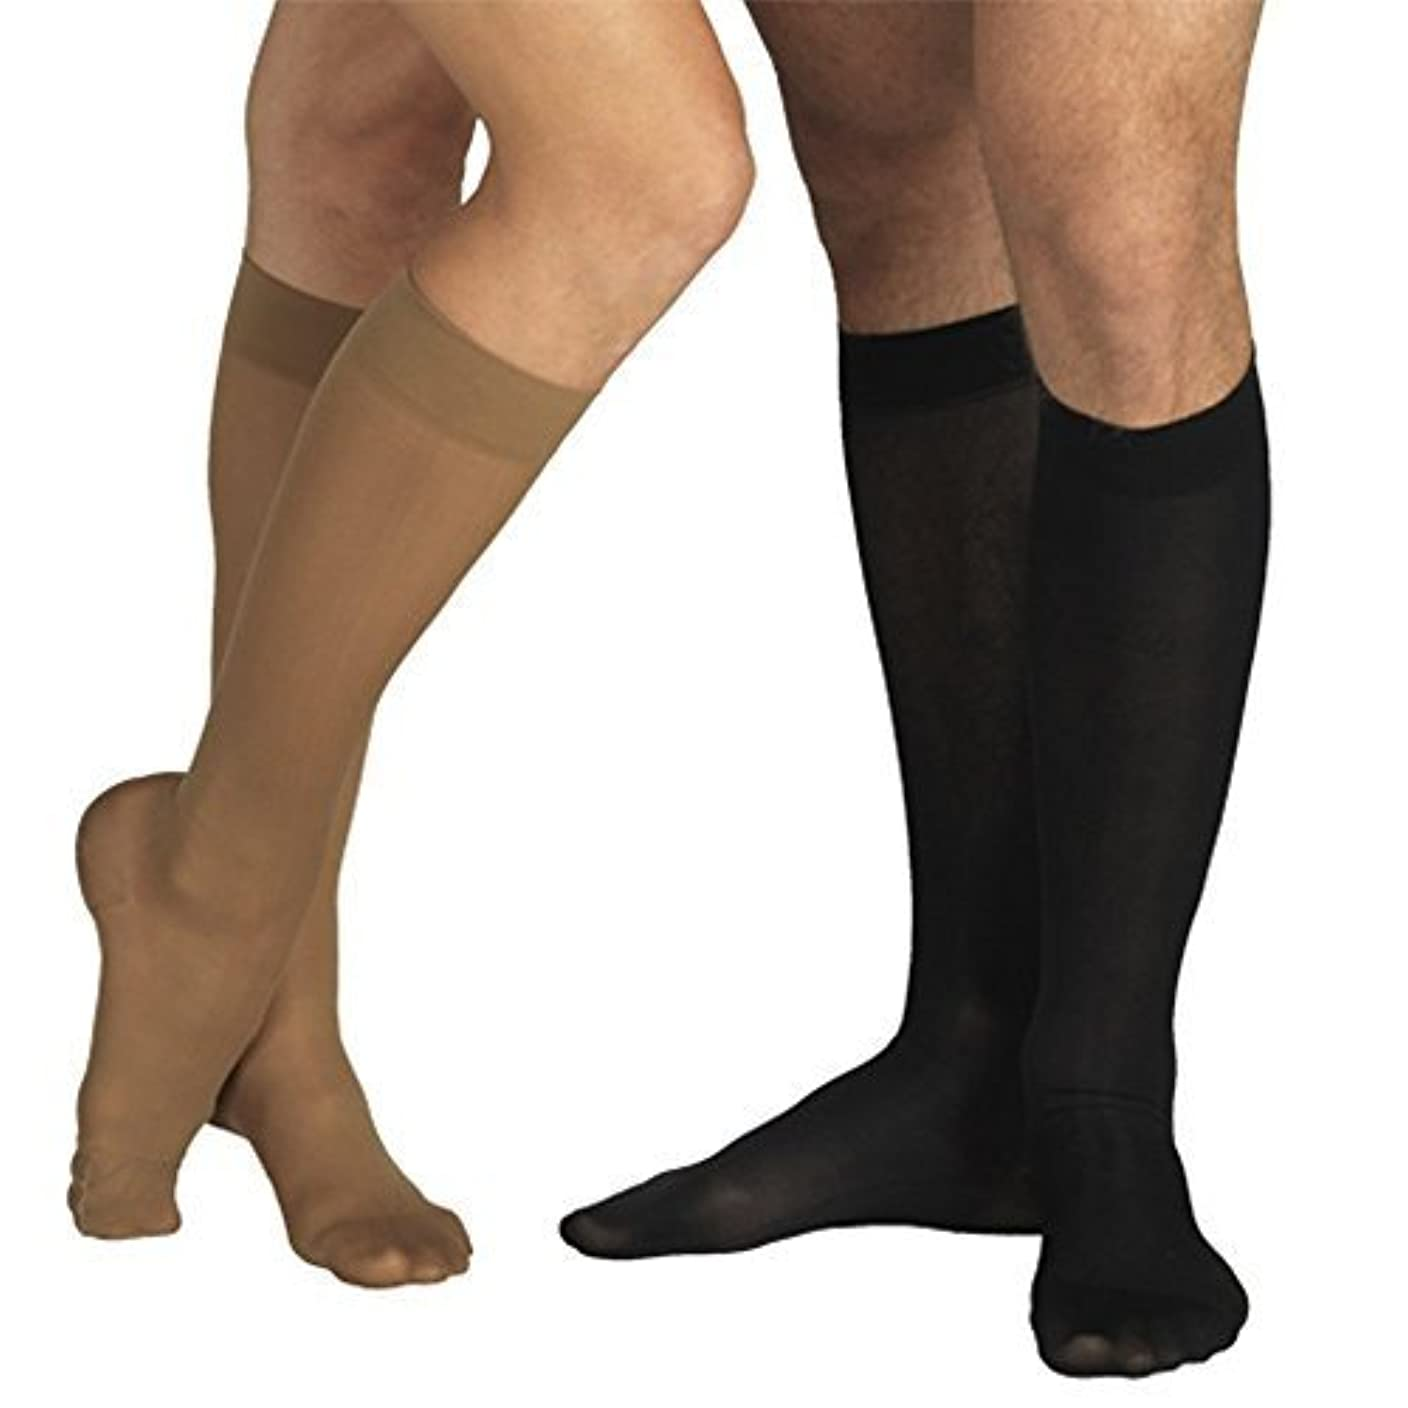 18-21 mmHg MEDICAL Compression Socks with CLOSED Toe, MODERATE Grade Class I, Knee High Support Stockings with...